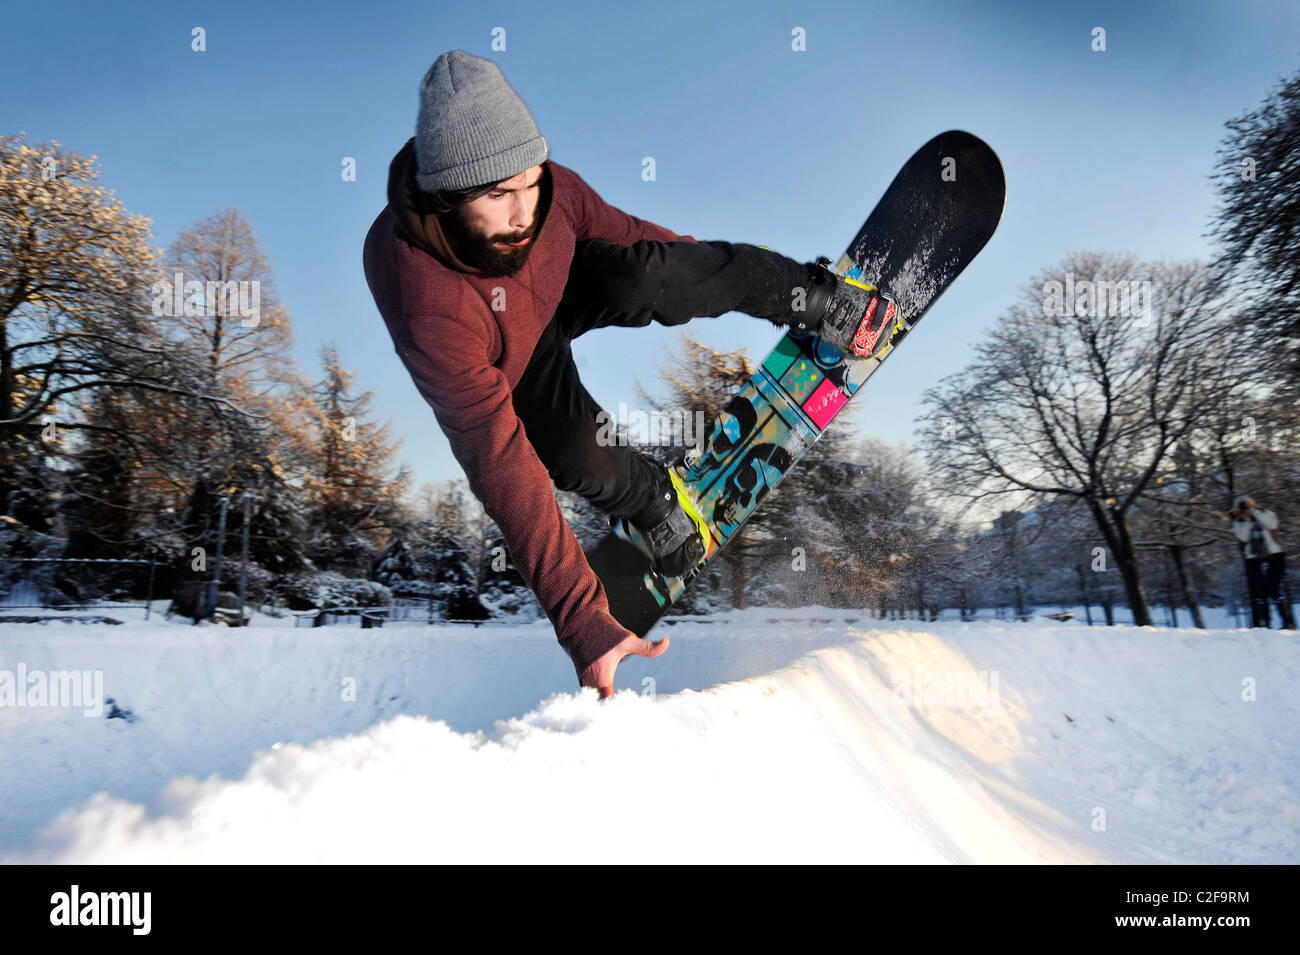 A man rides a snowboard on a snow covered skatepark in Kelvingrove Park, Glasgow, Scotland. - Stock Image